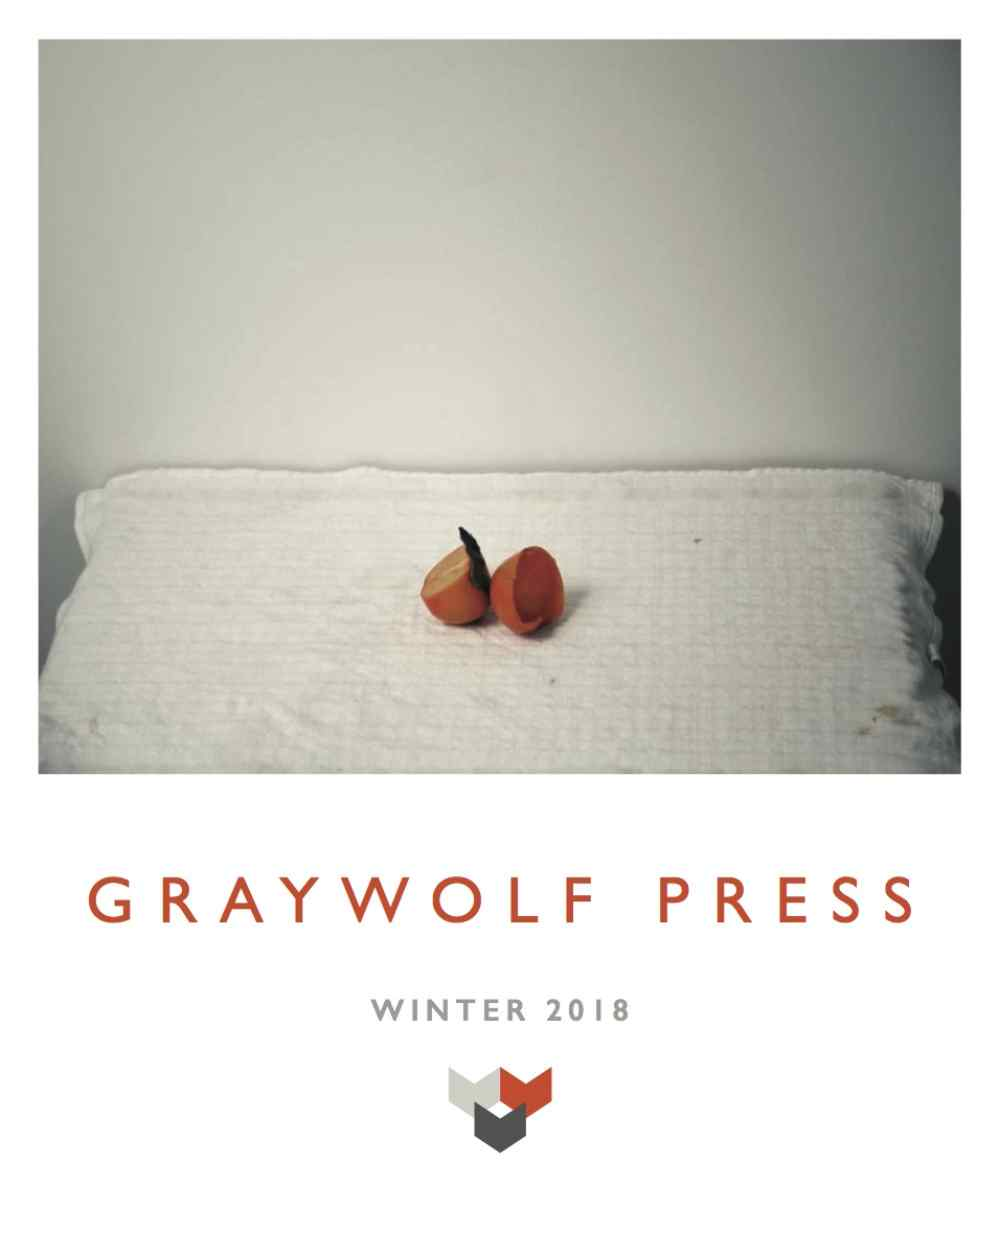 Winter 2018 Graywolf Press Catalog Cover